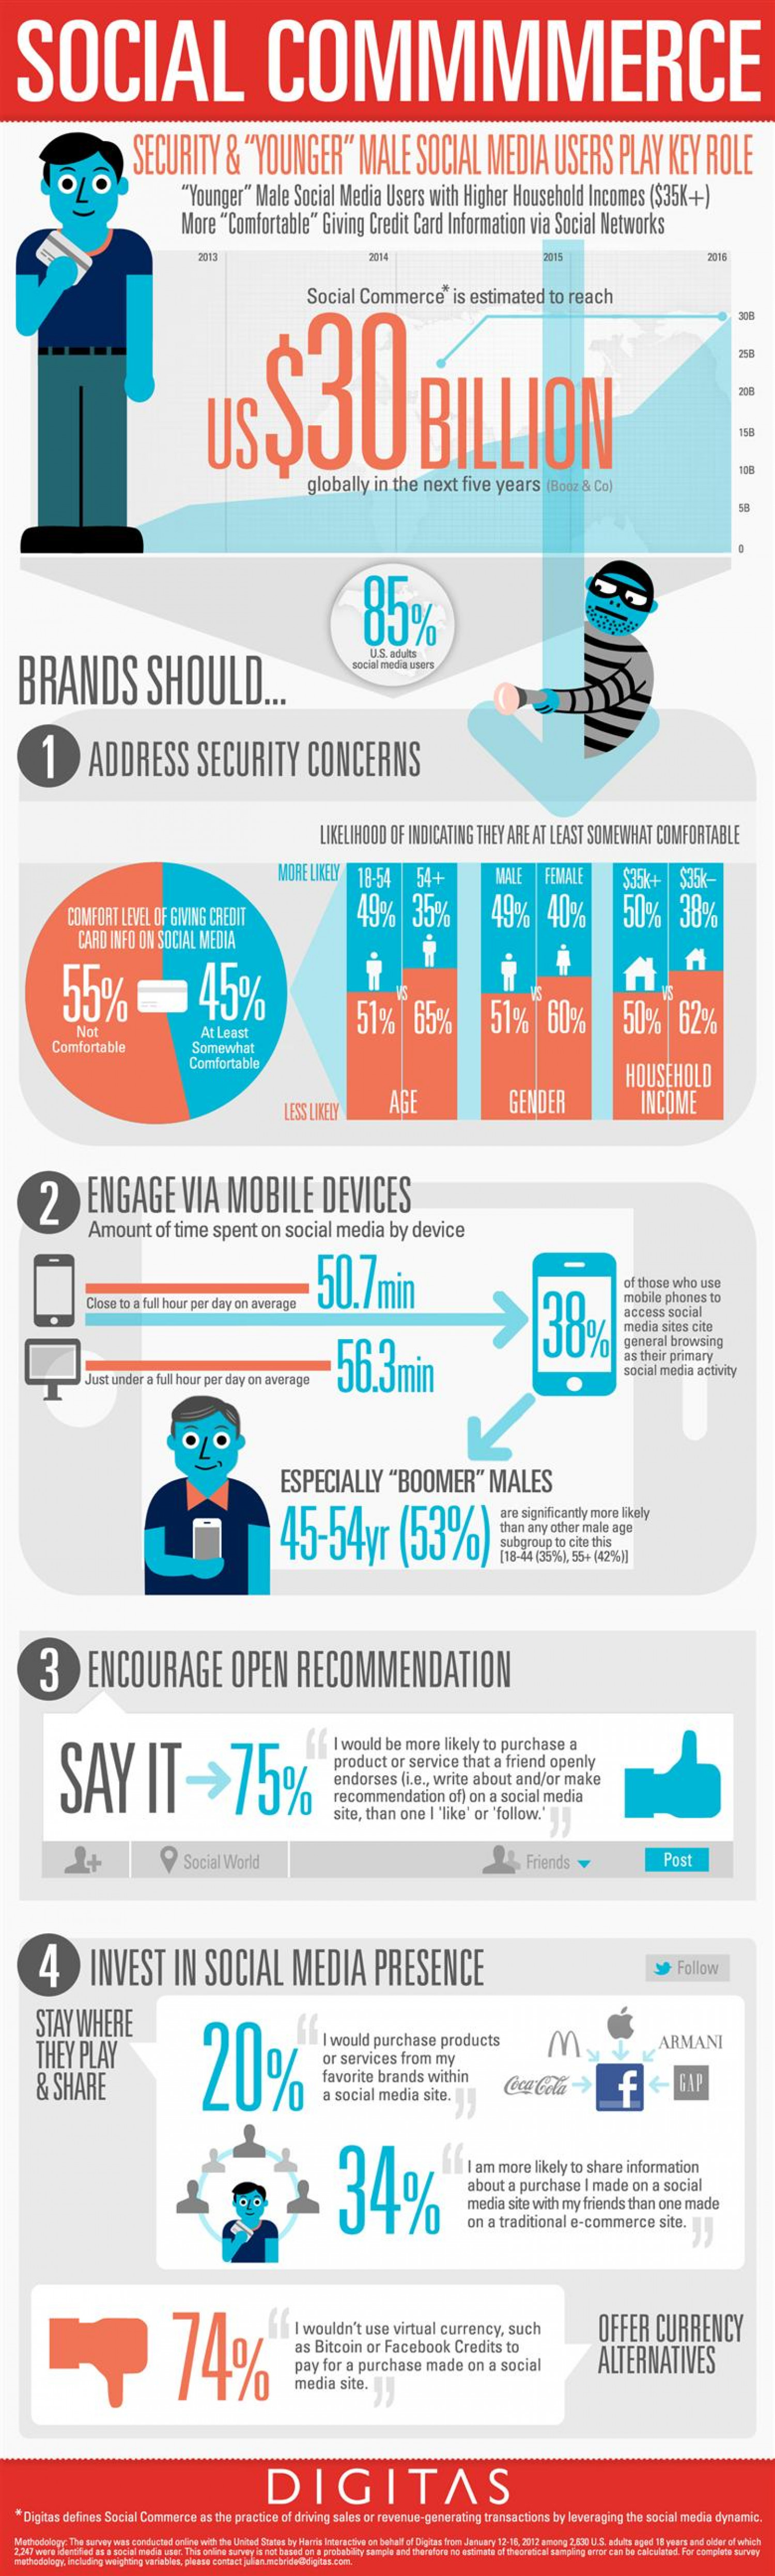 Social commerce still needs to clear security concern hurdles Infographic